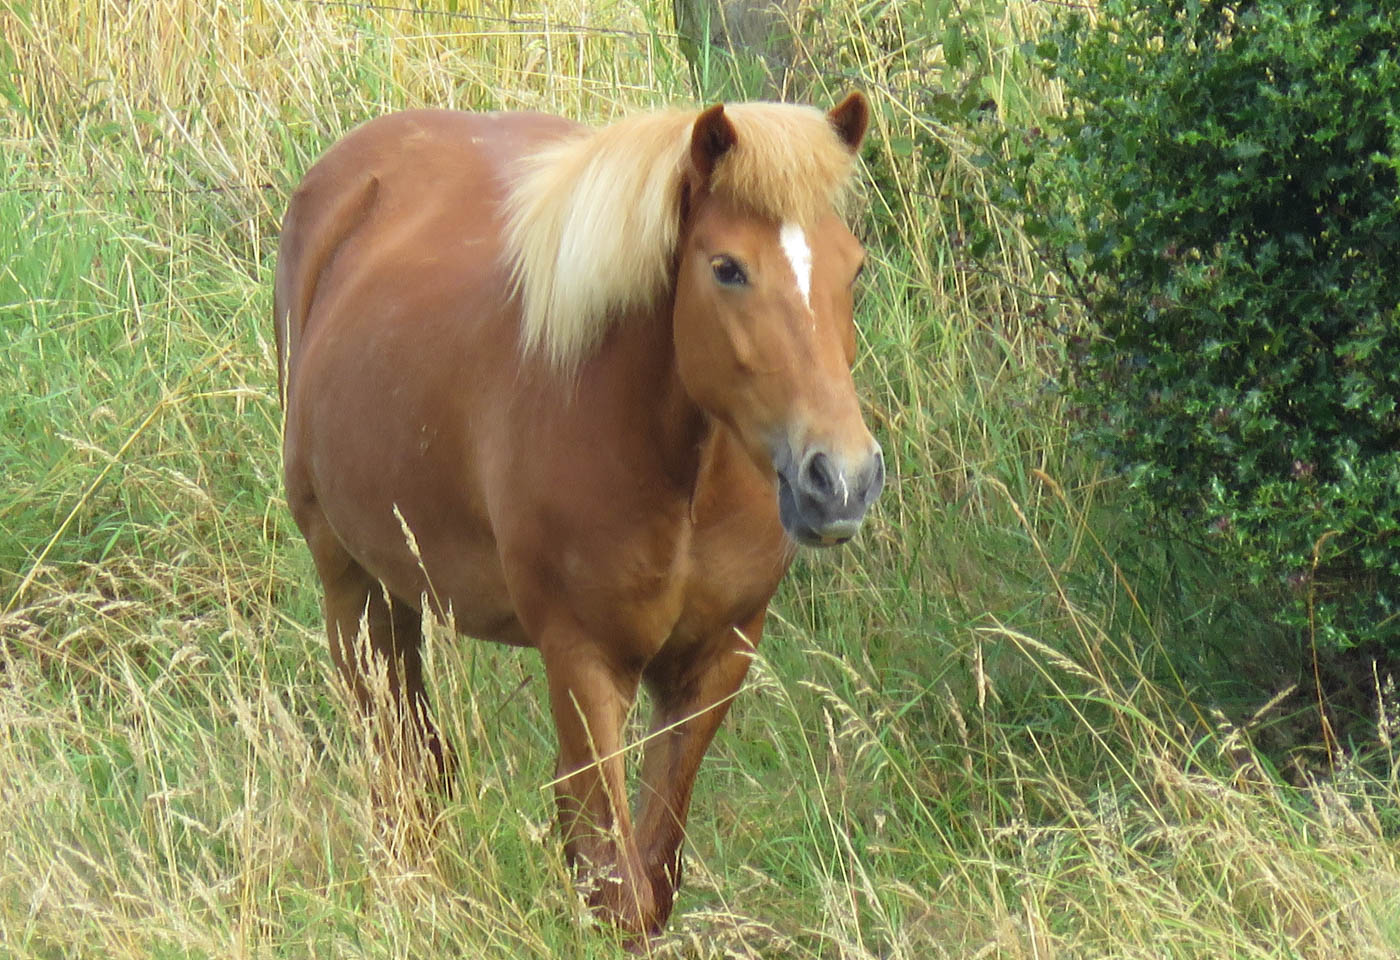 Horse in the grass, taken with the Canon PowerShot SX60 HS digital camera